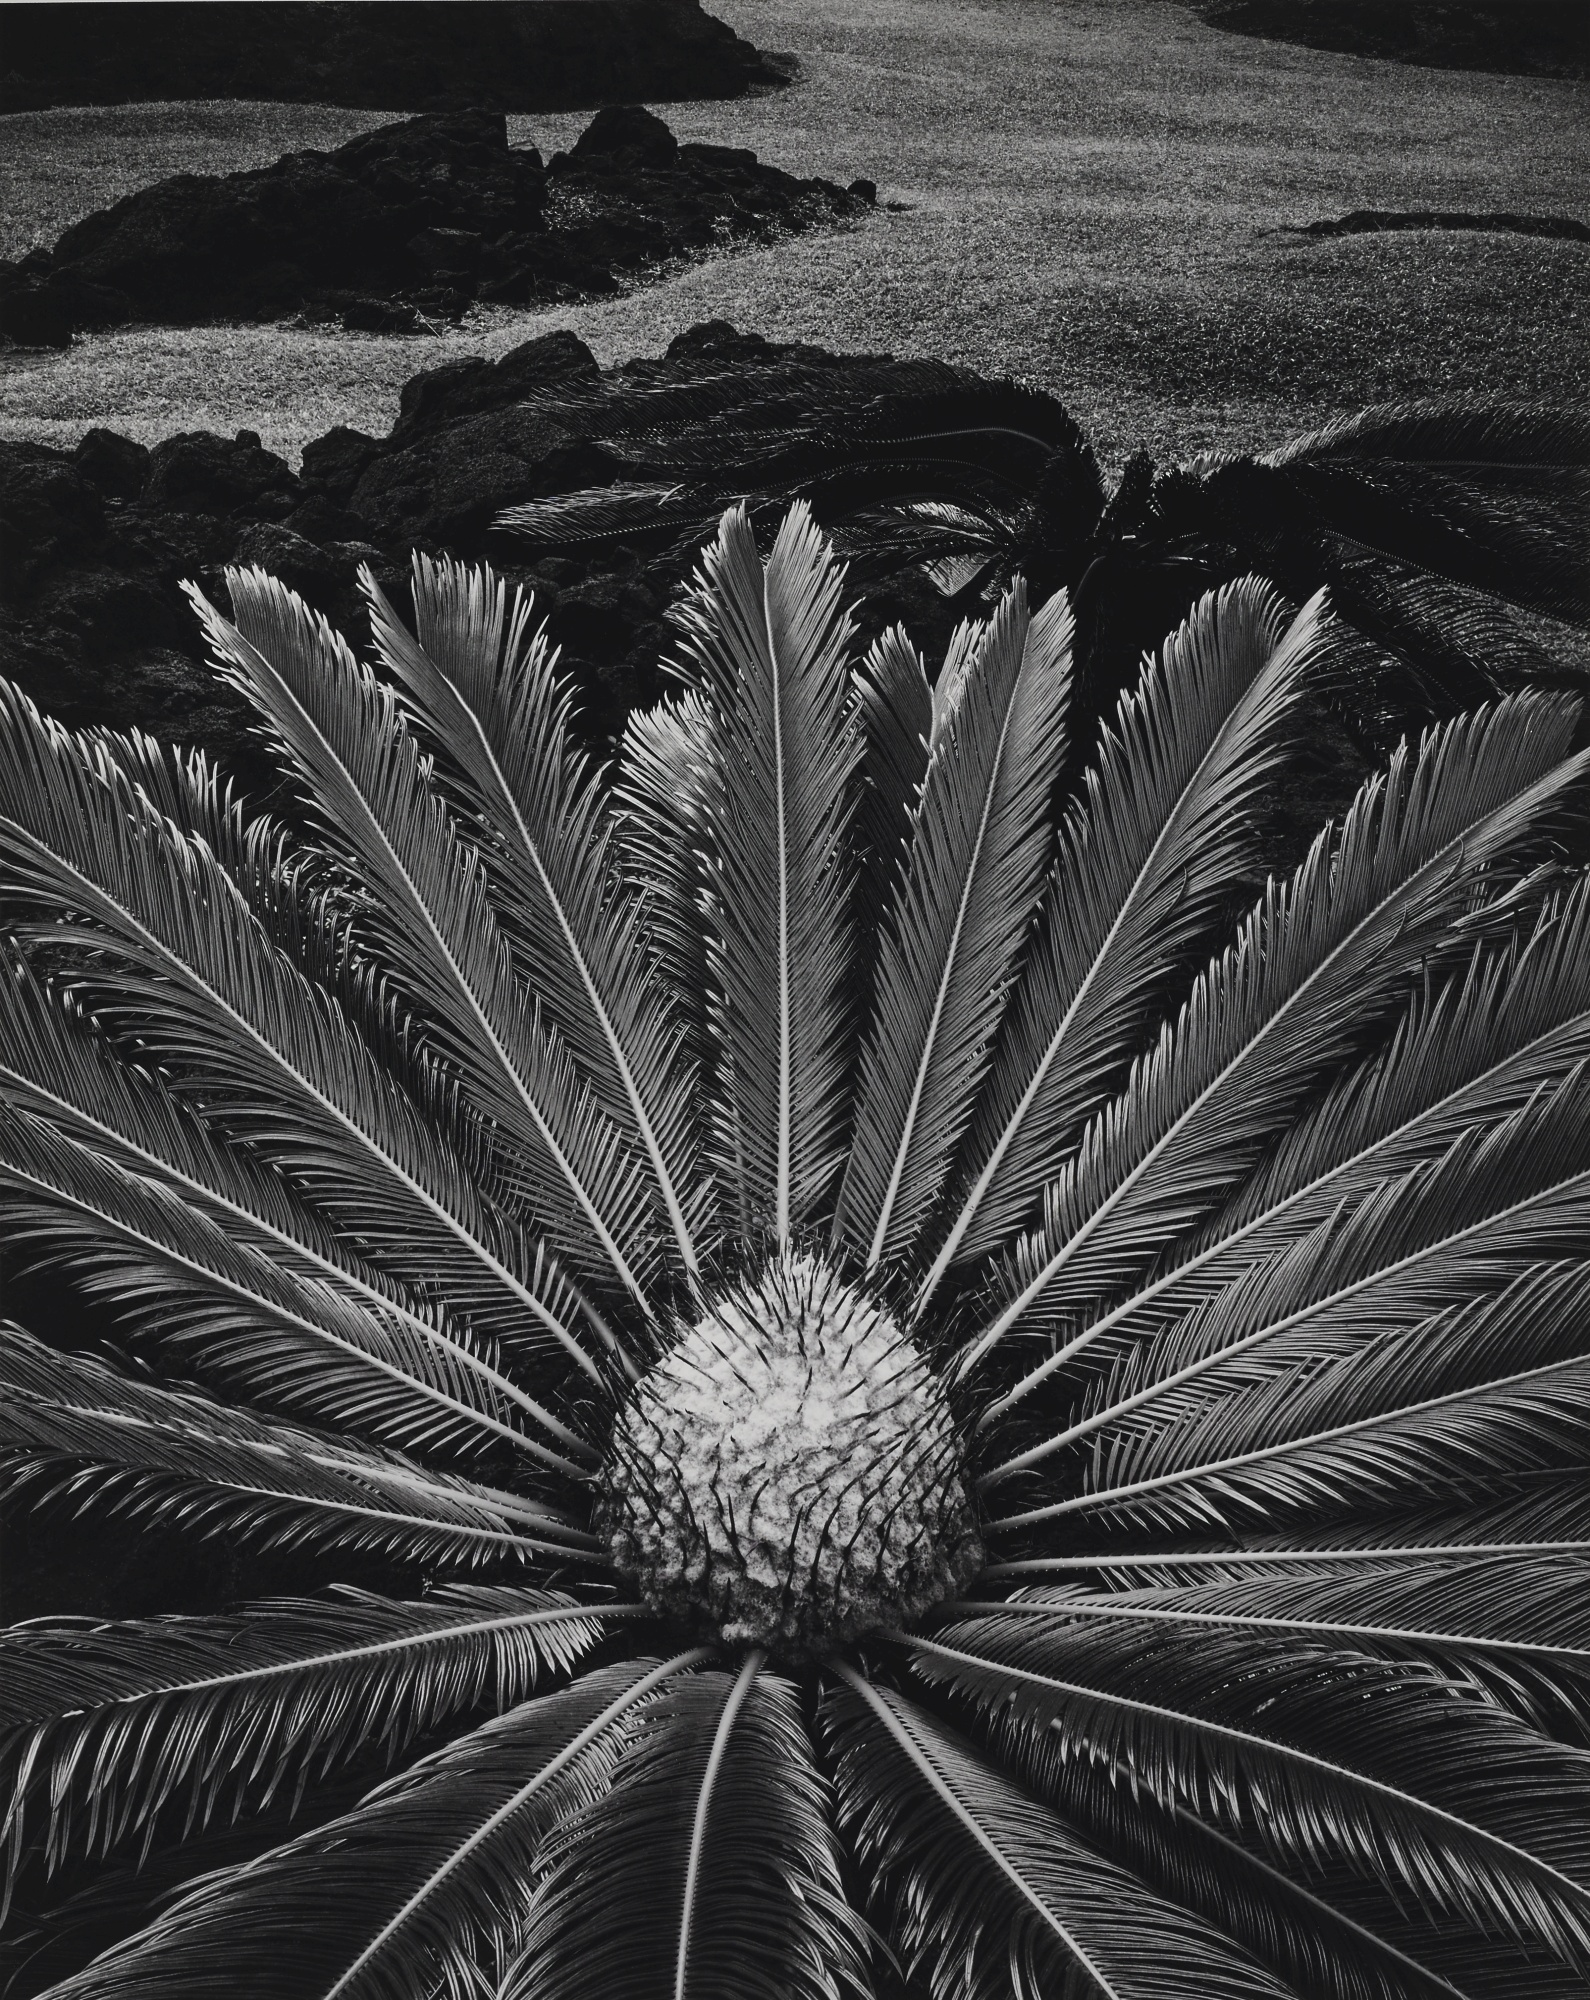 Don Worth-Cycas Revoluta, Hilo Hawaii-1977